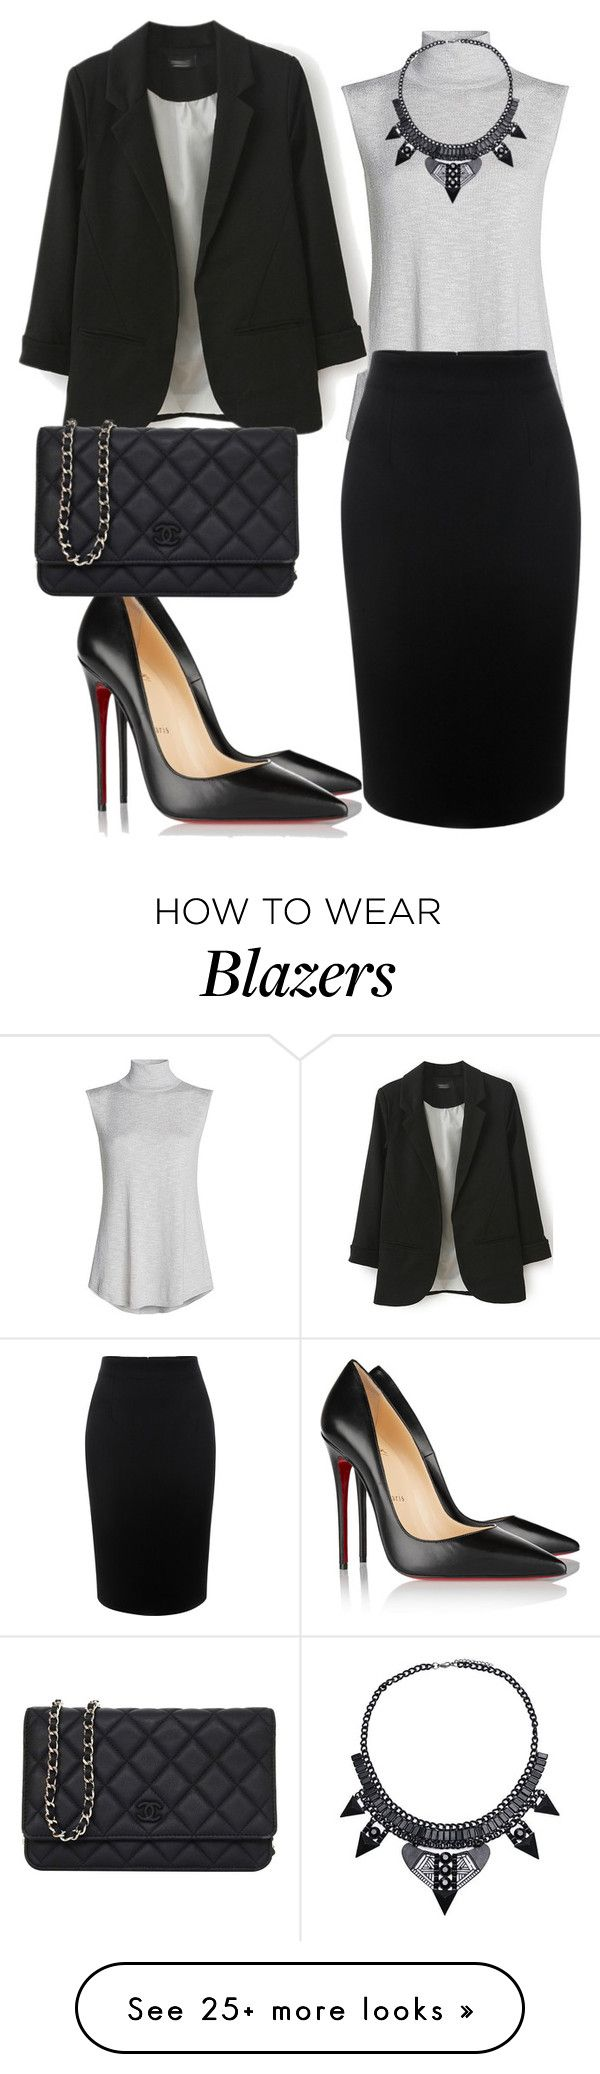 """""""Untitled #108"""" by arijana-cehic on Polyvore featuring NIC+ZOE, Alexander McQueen, Christian Louboutin and Chanel"""